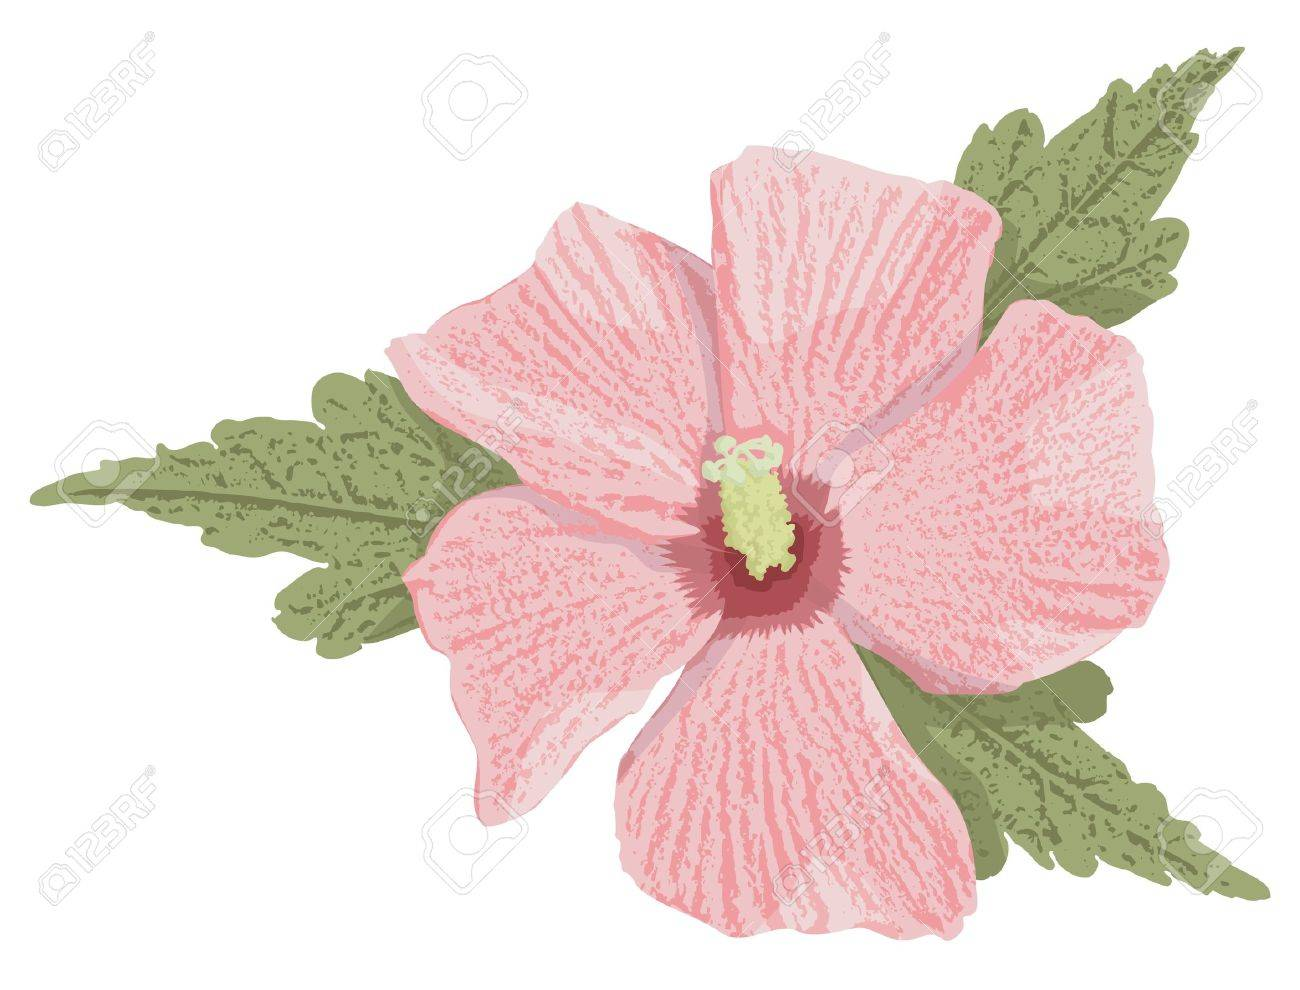 Pink hibiscus flower with grunge shading isolated on white background. - 10411677